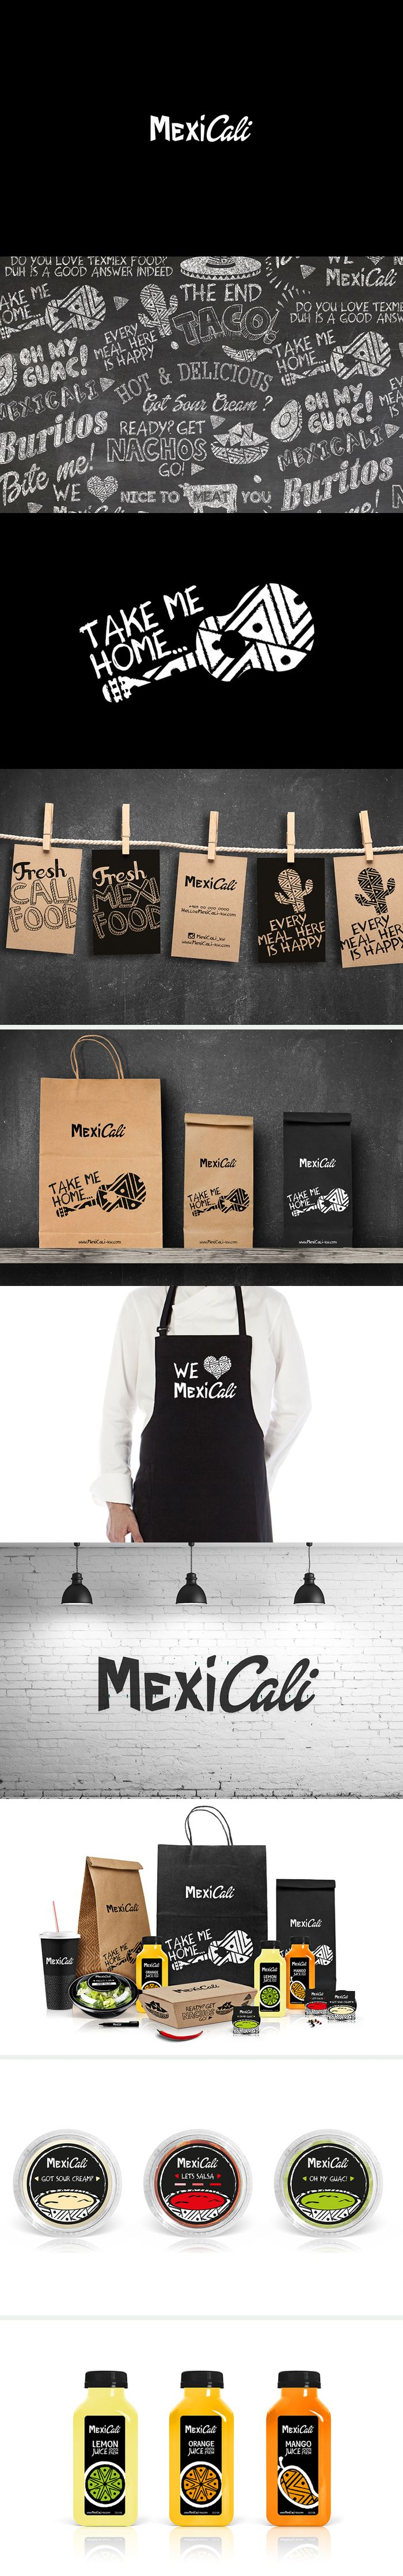 Identidad #MexicanStyle #Food